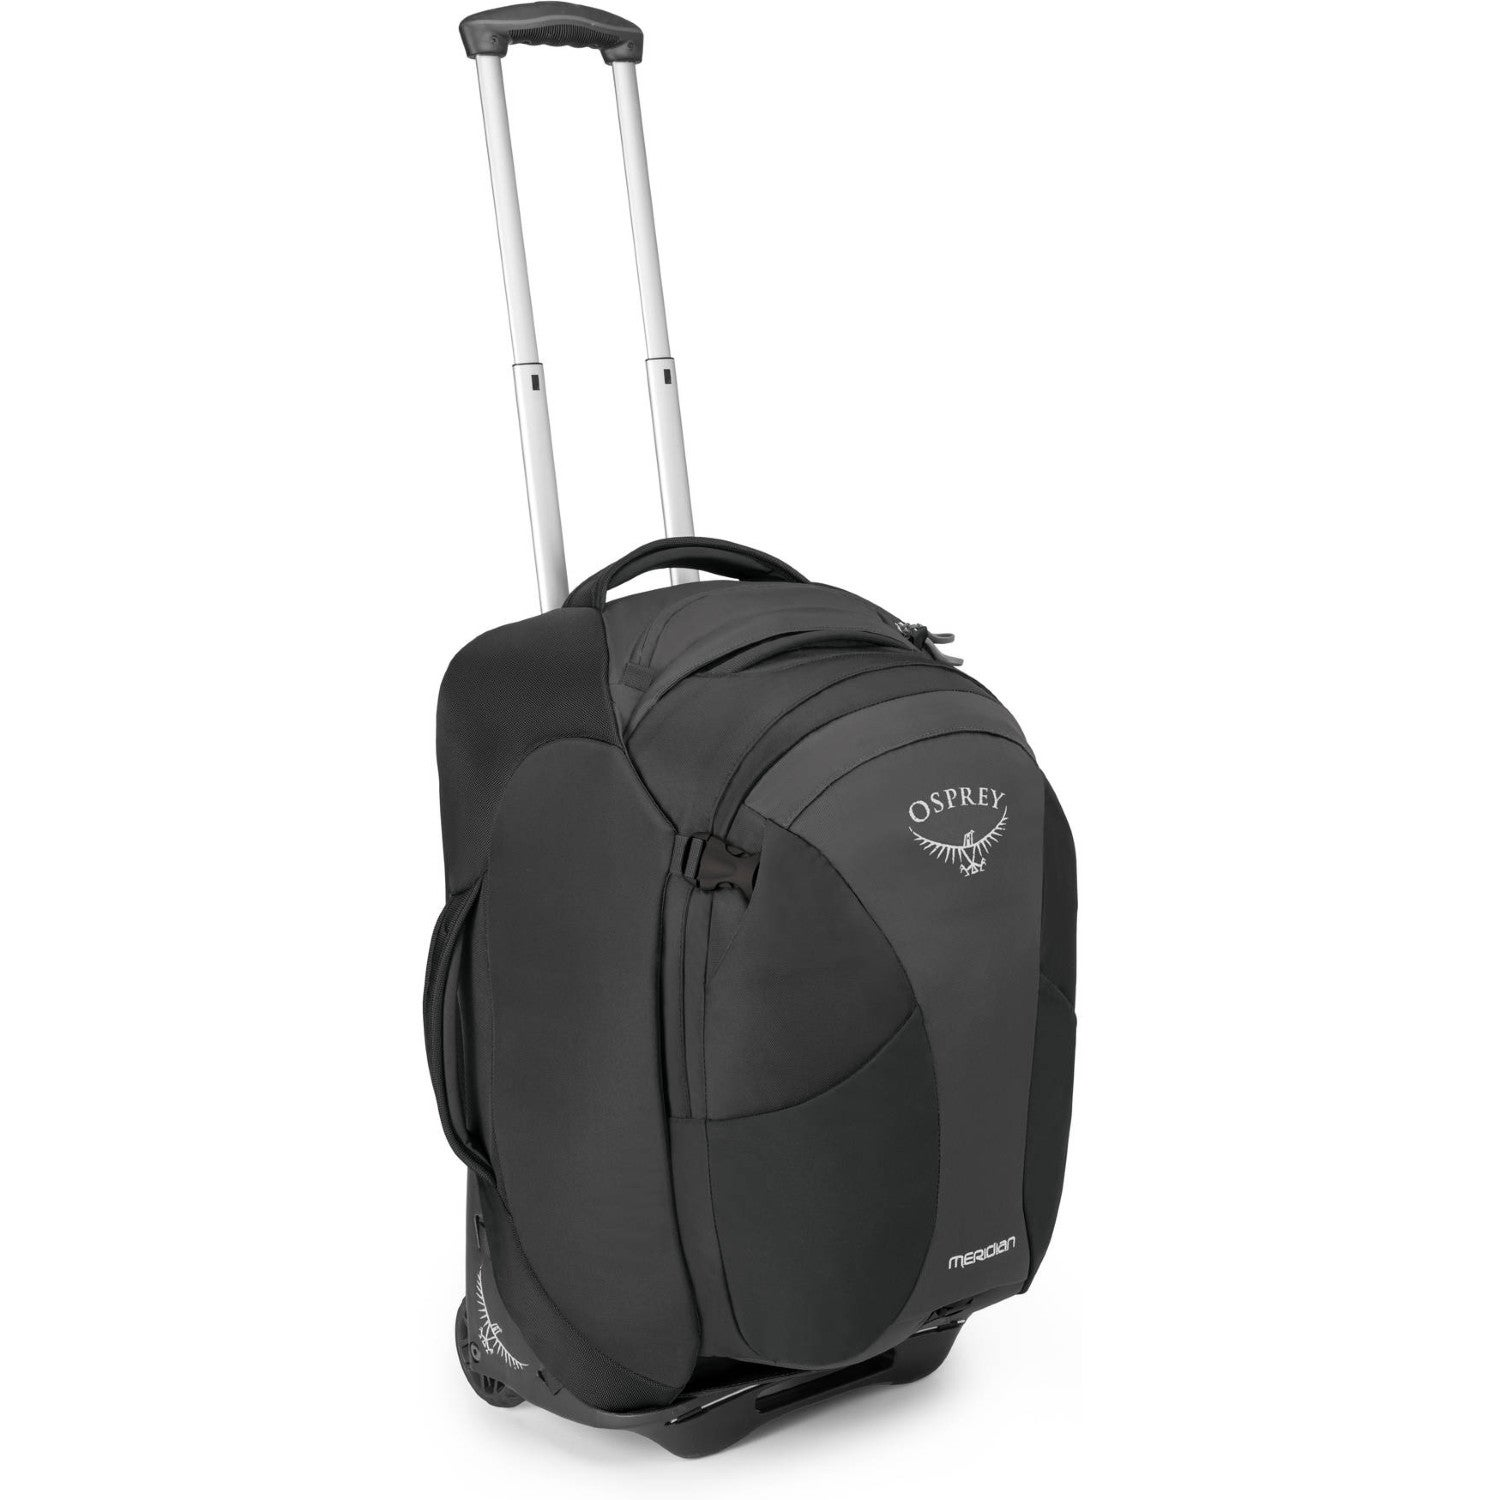 Osprey Meridian 60 Luggage - Metal Grey